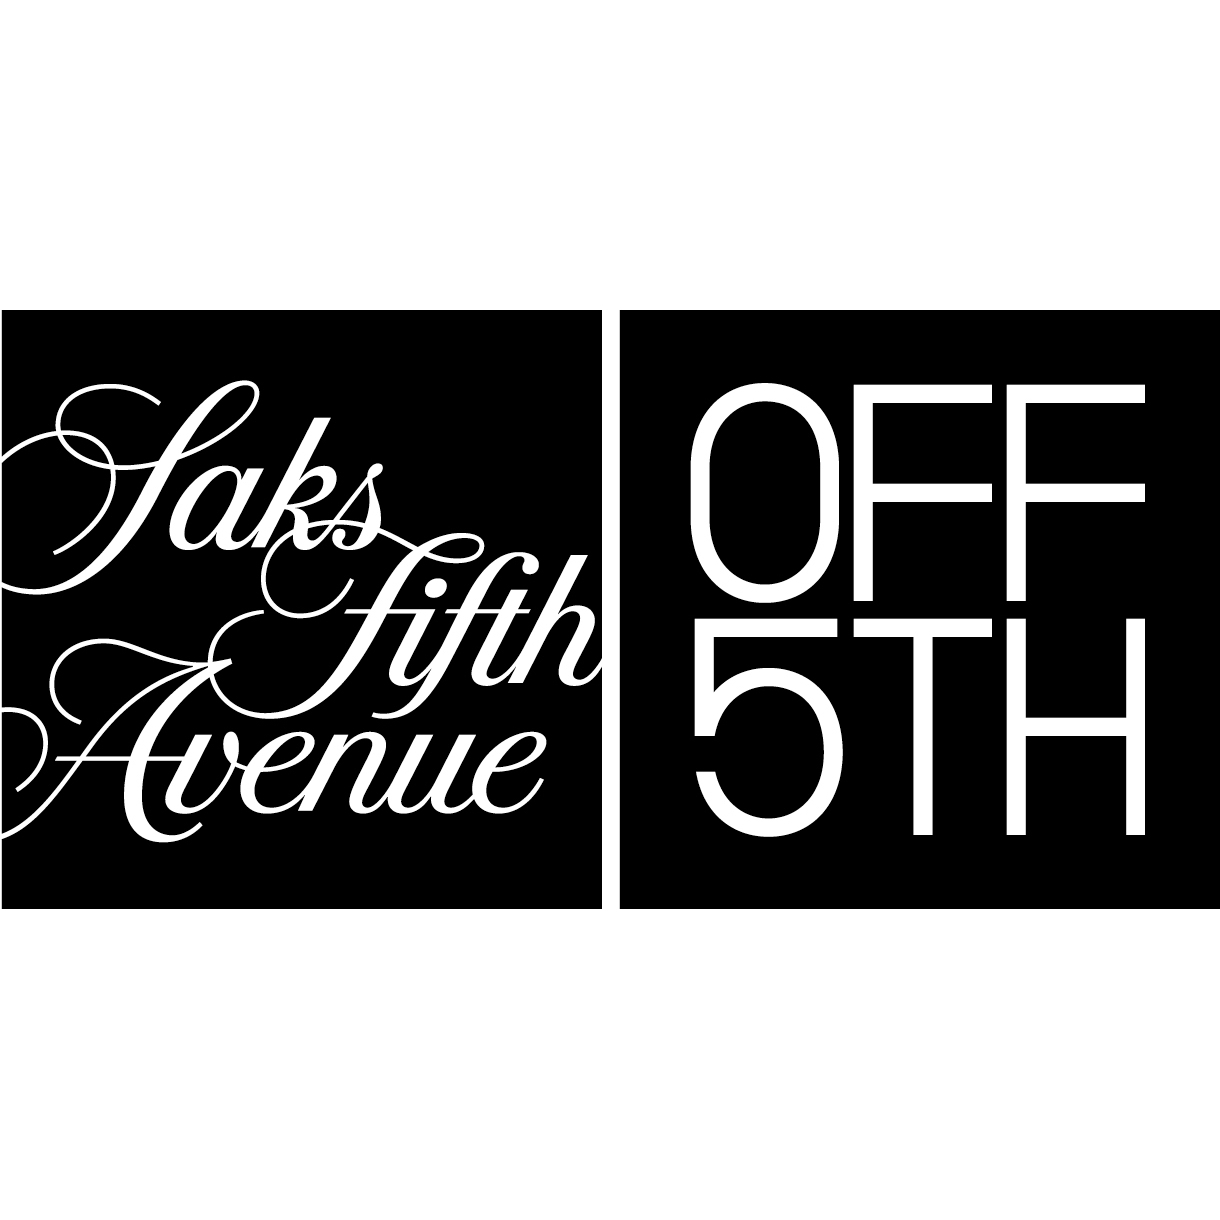 Saks OFF 5TH - Paramus, NJ - Department Stores